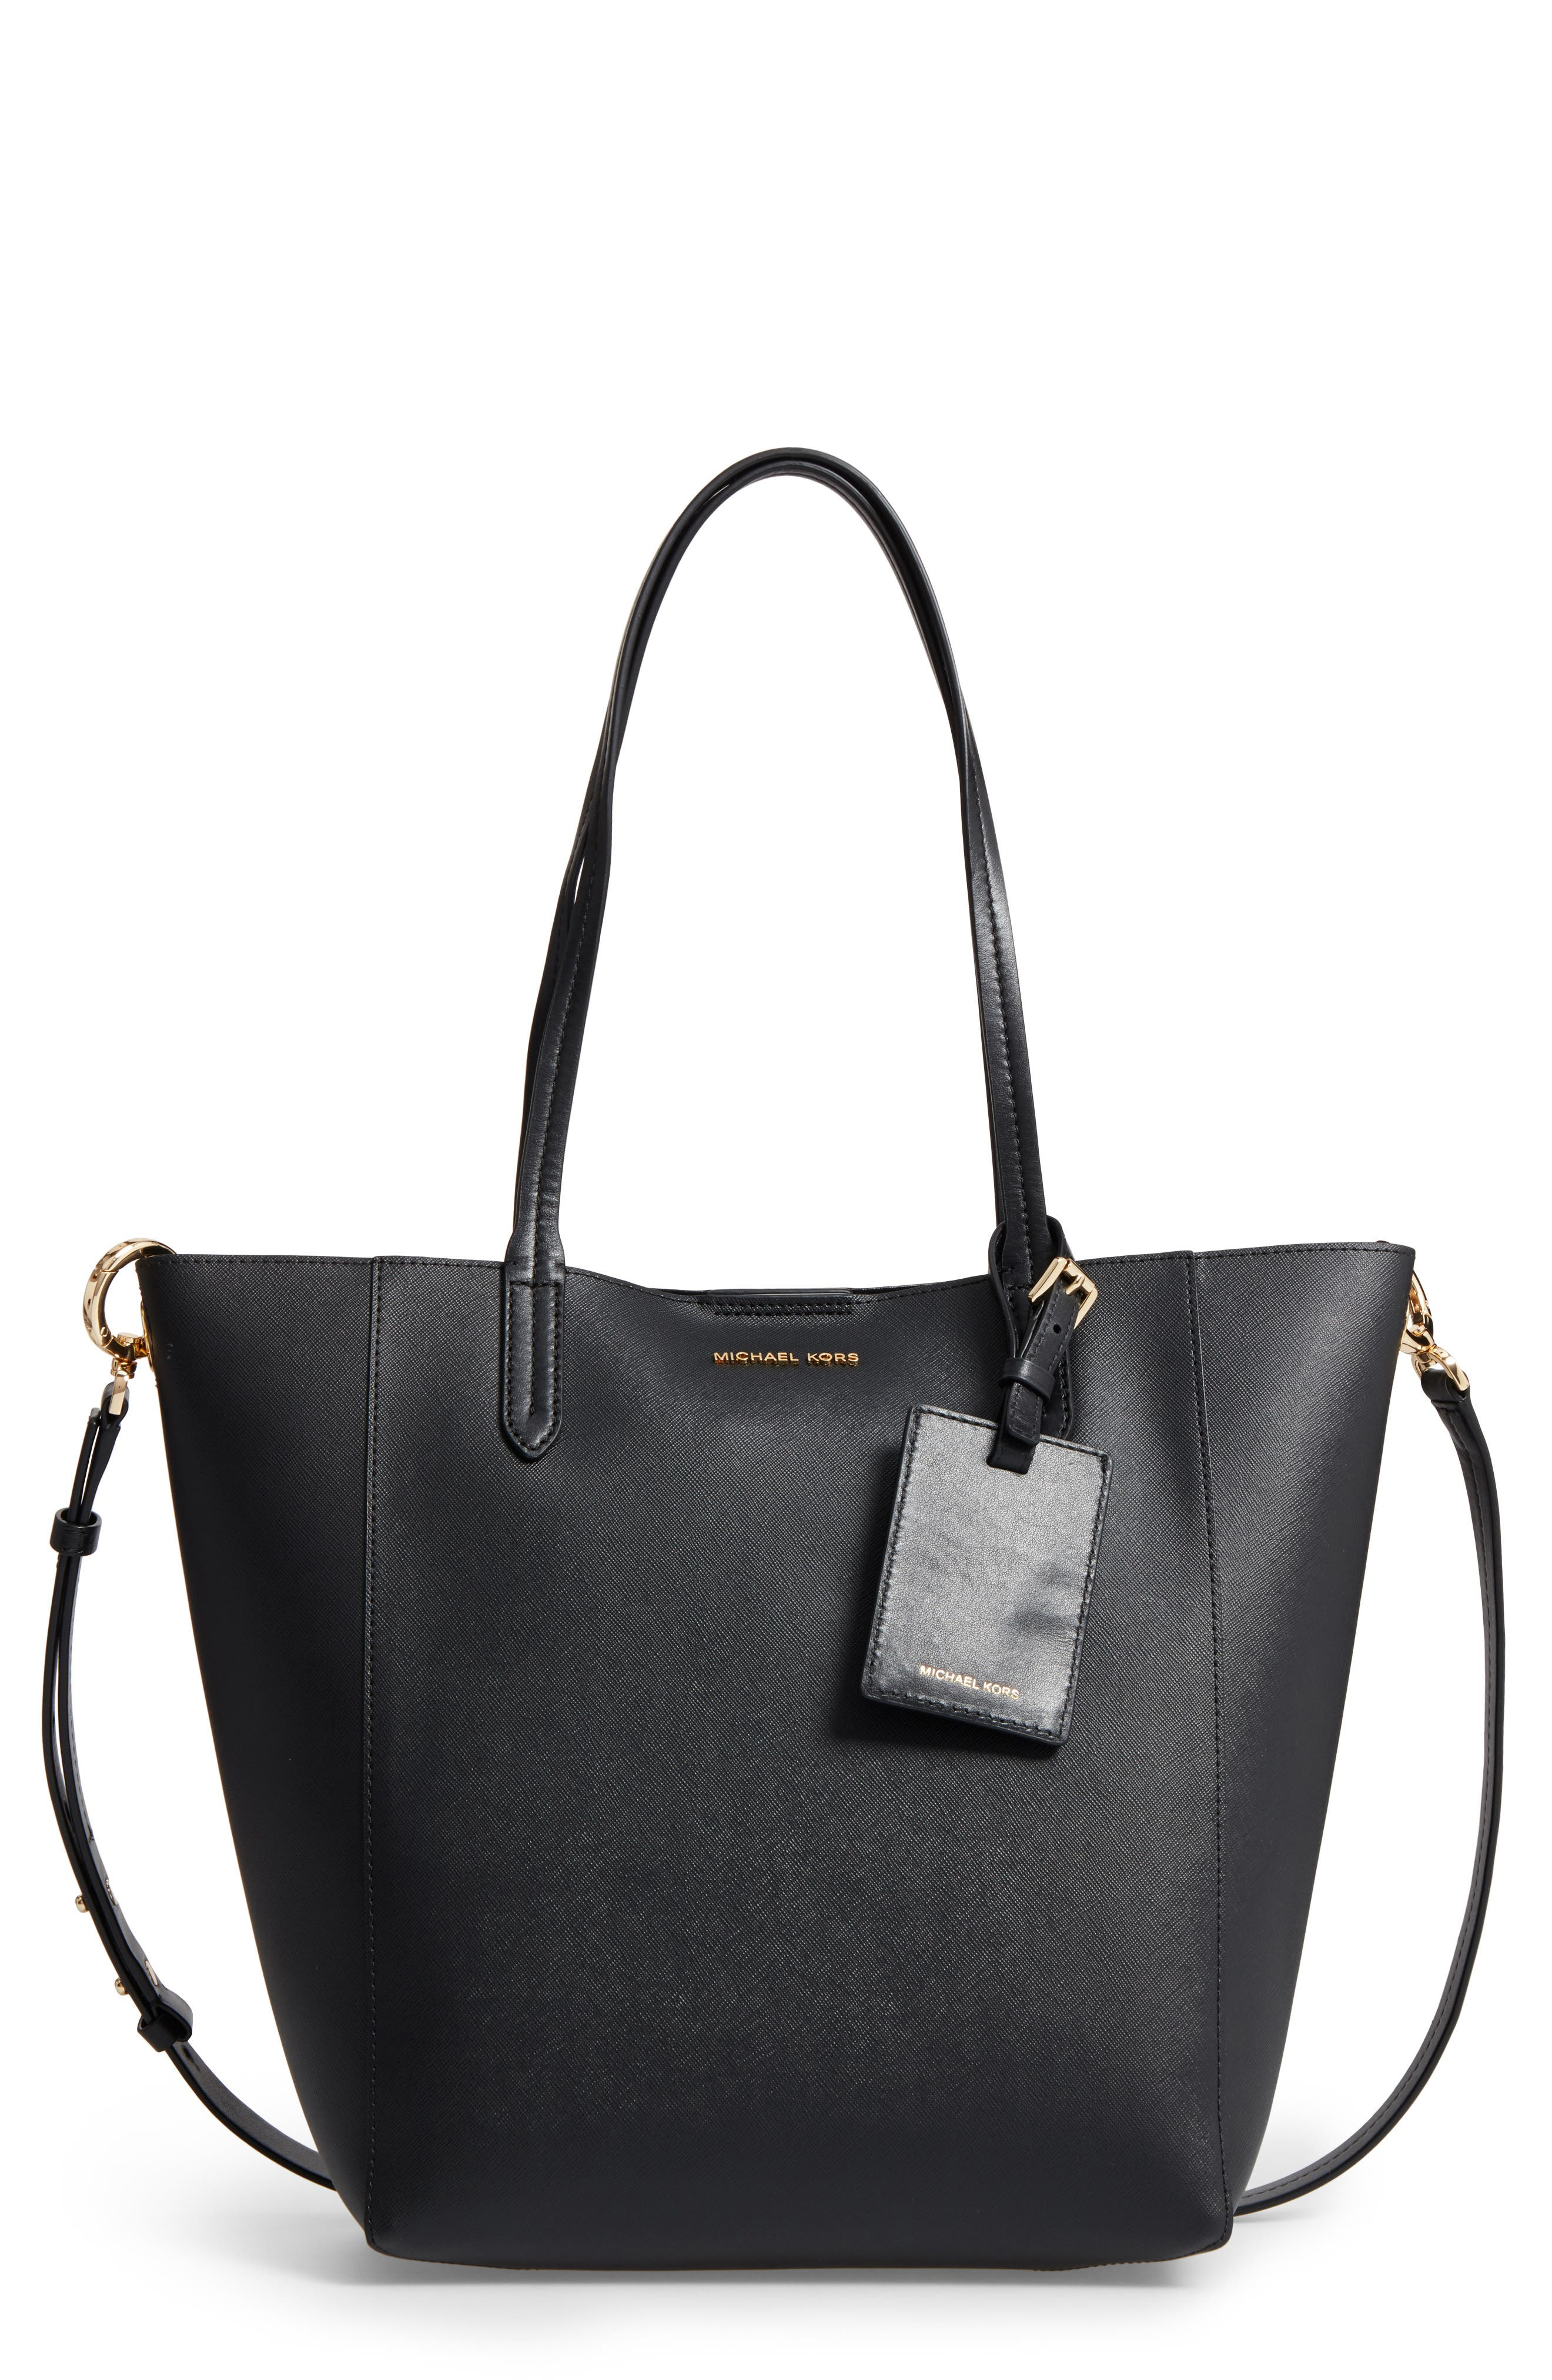 Main Image - MICHAEL Michael Kors Penny Large Saffiano Convertible Leather Tote